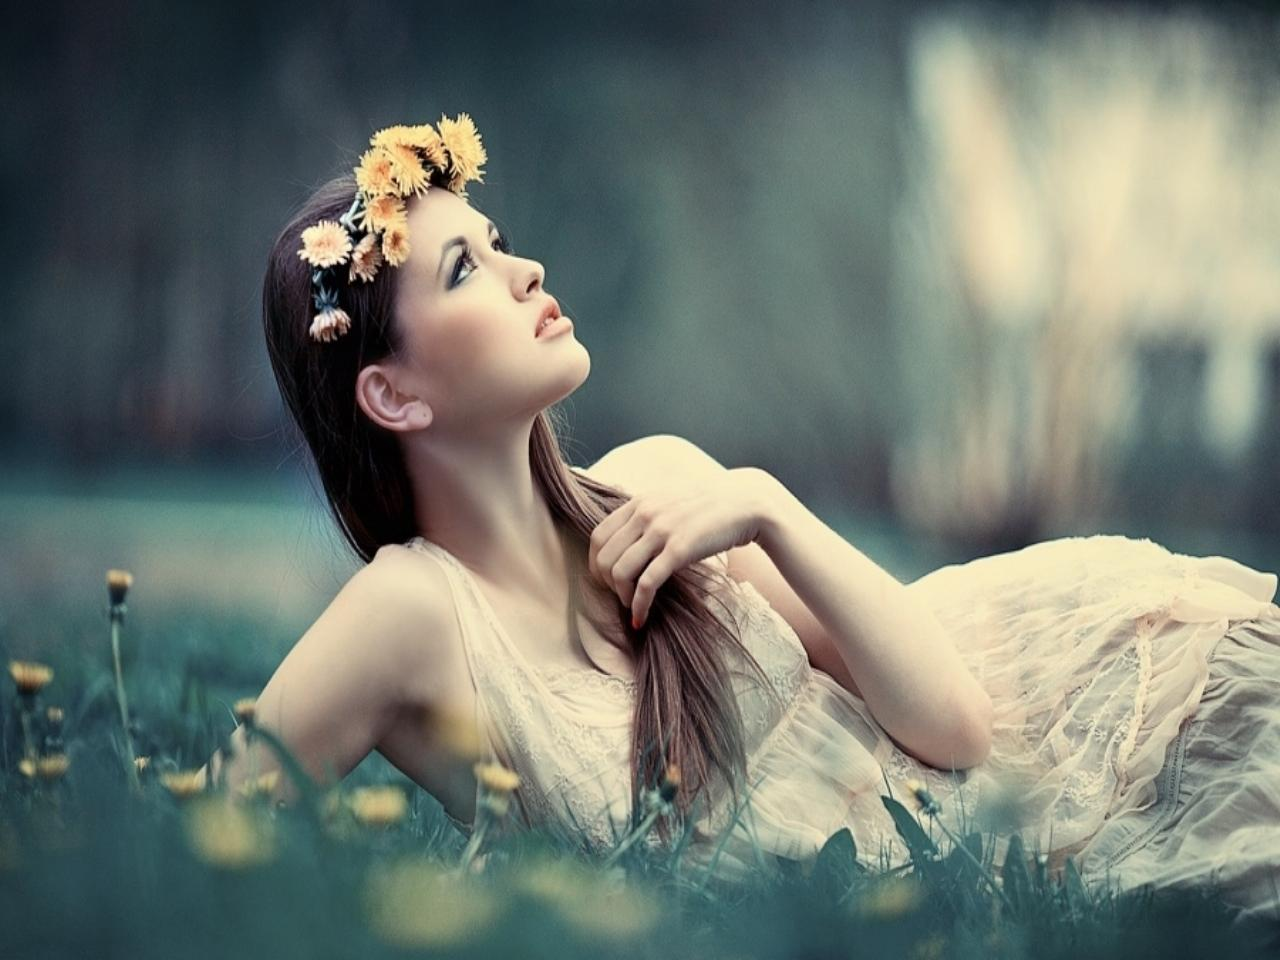 wearing-flower-ring-girl-photography-facebook-timeline-cover,1280x960,66709